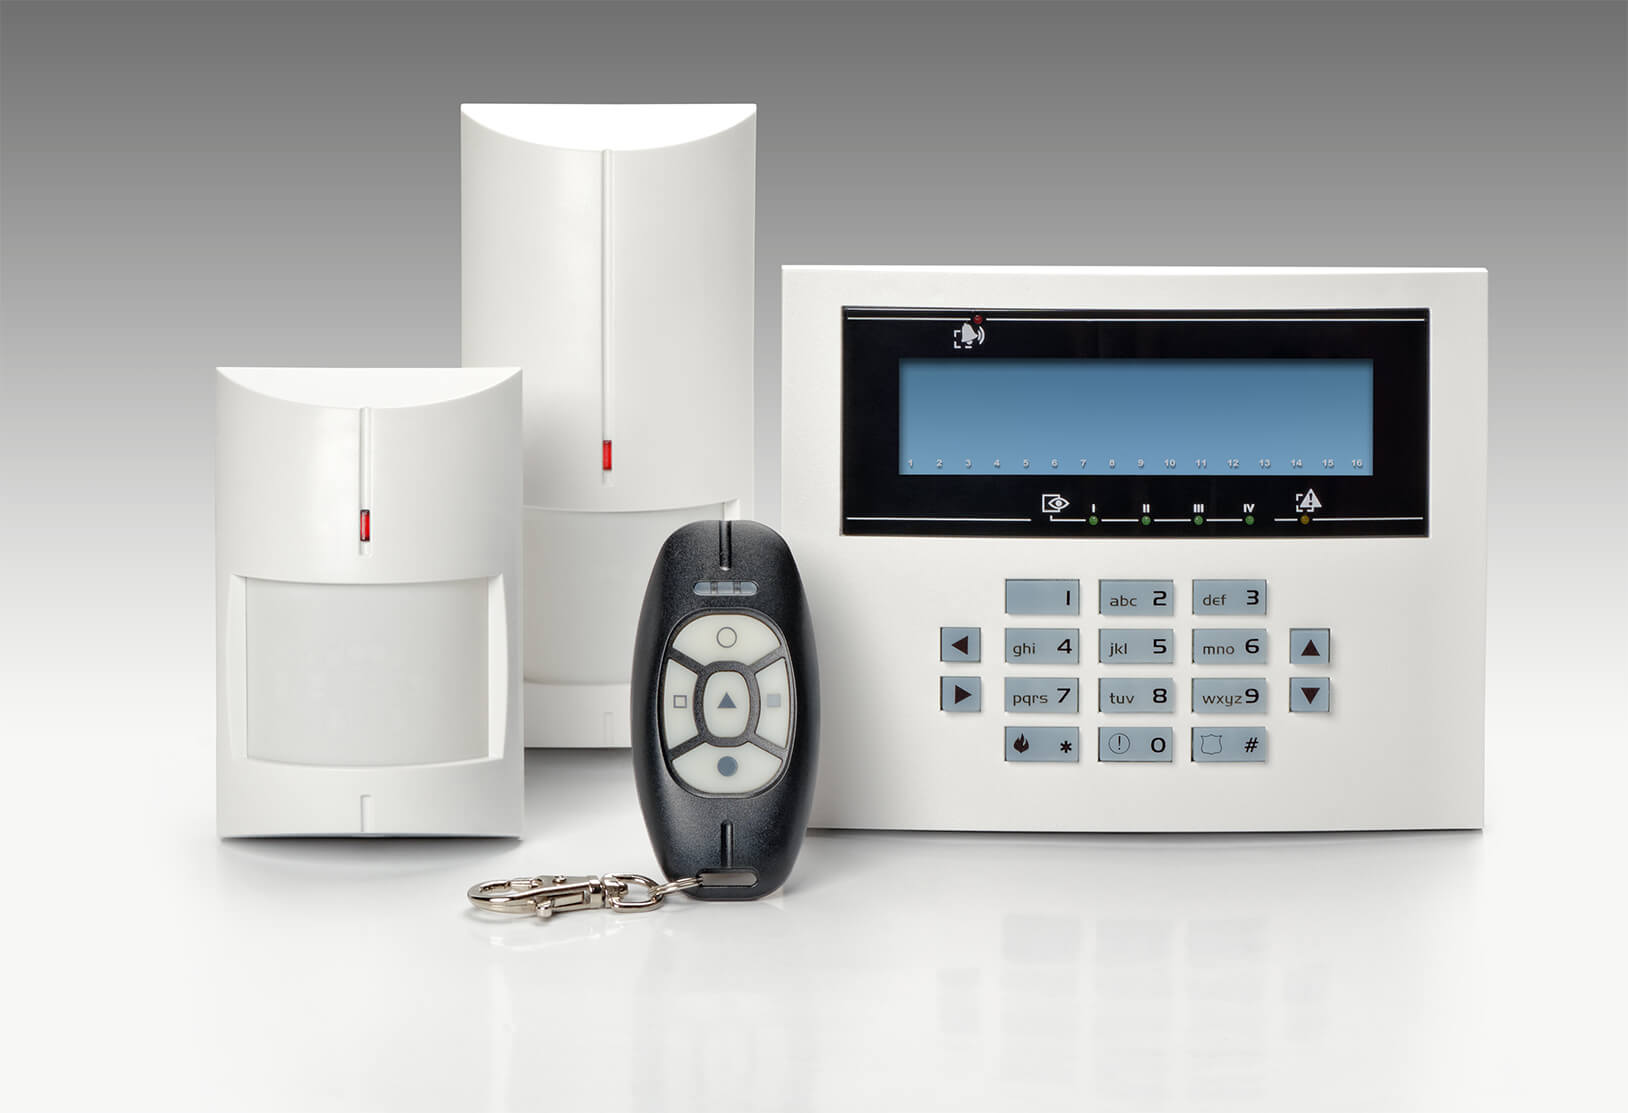 Business & Residential NACOSS Approved Burglar Alarms In Camberwell SE5 - Local Camberwell SE5 security company.Call 02078872244 - Dedicated to Safety & Security. Companies, shops and homes ..